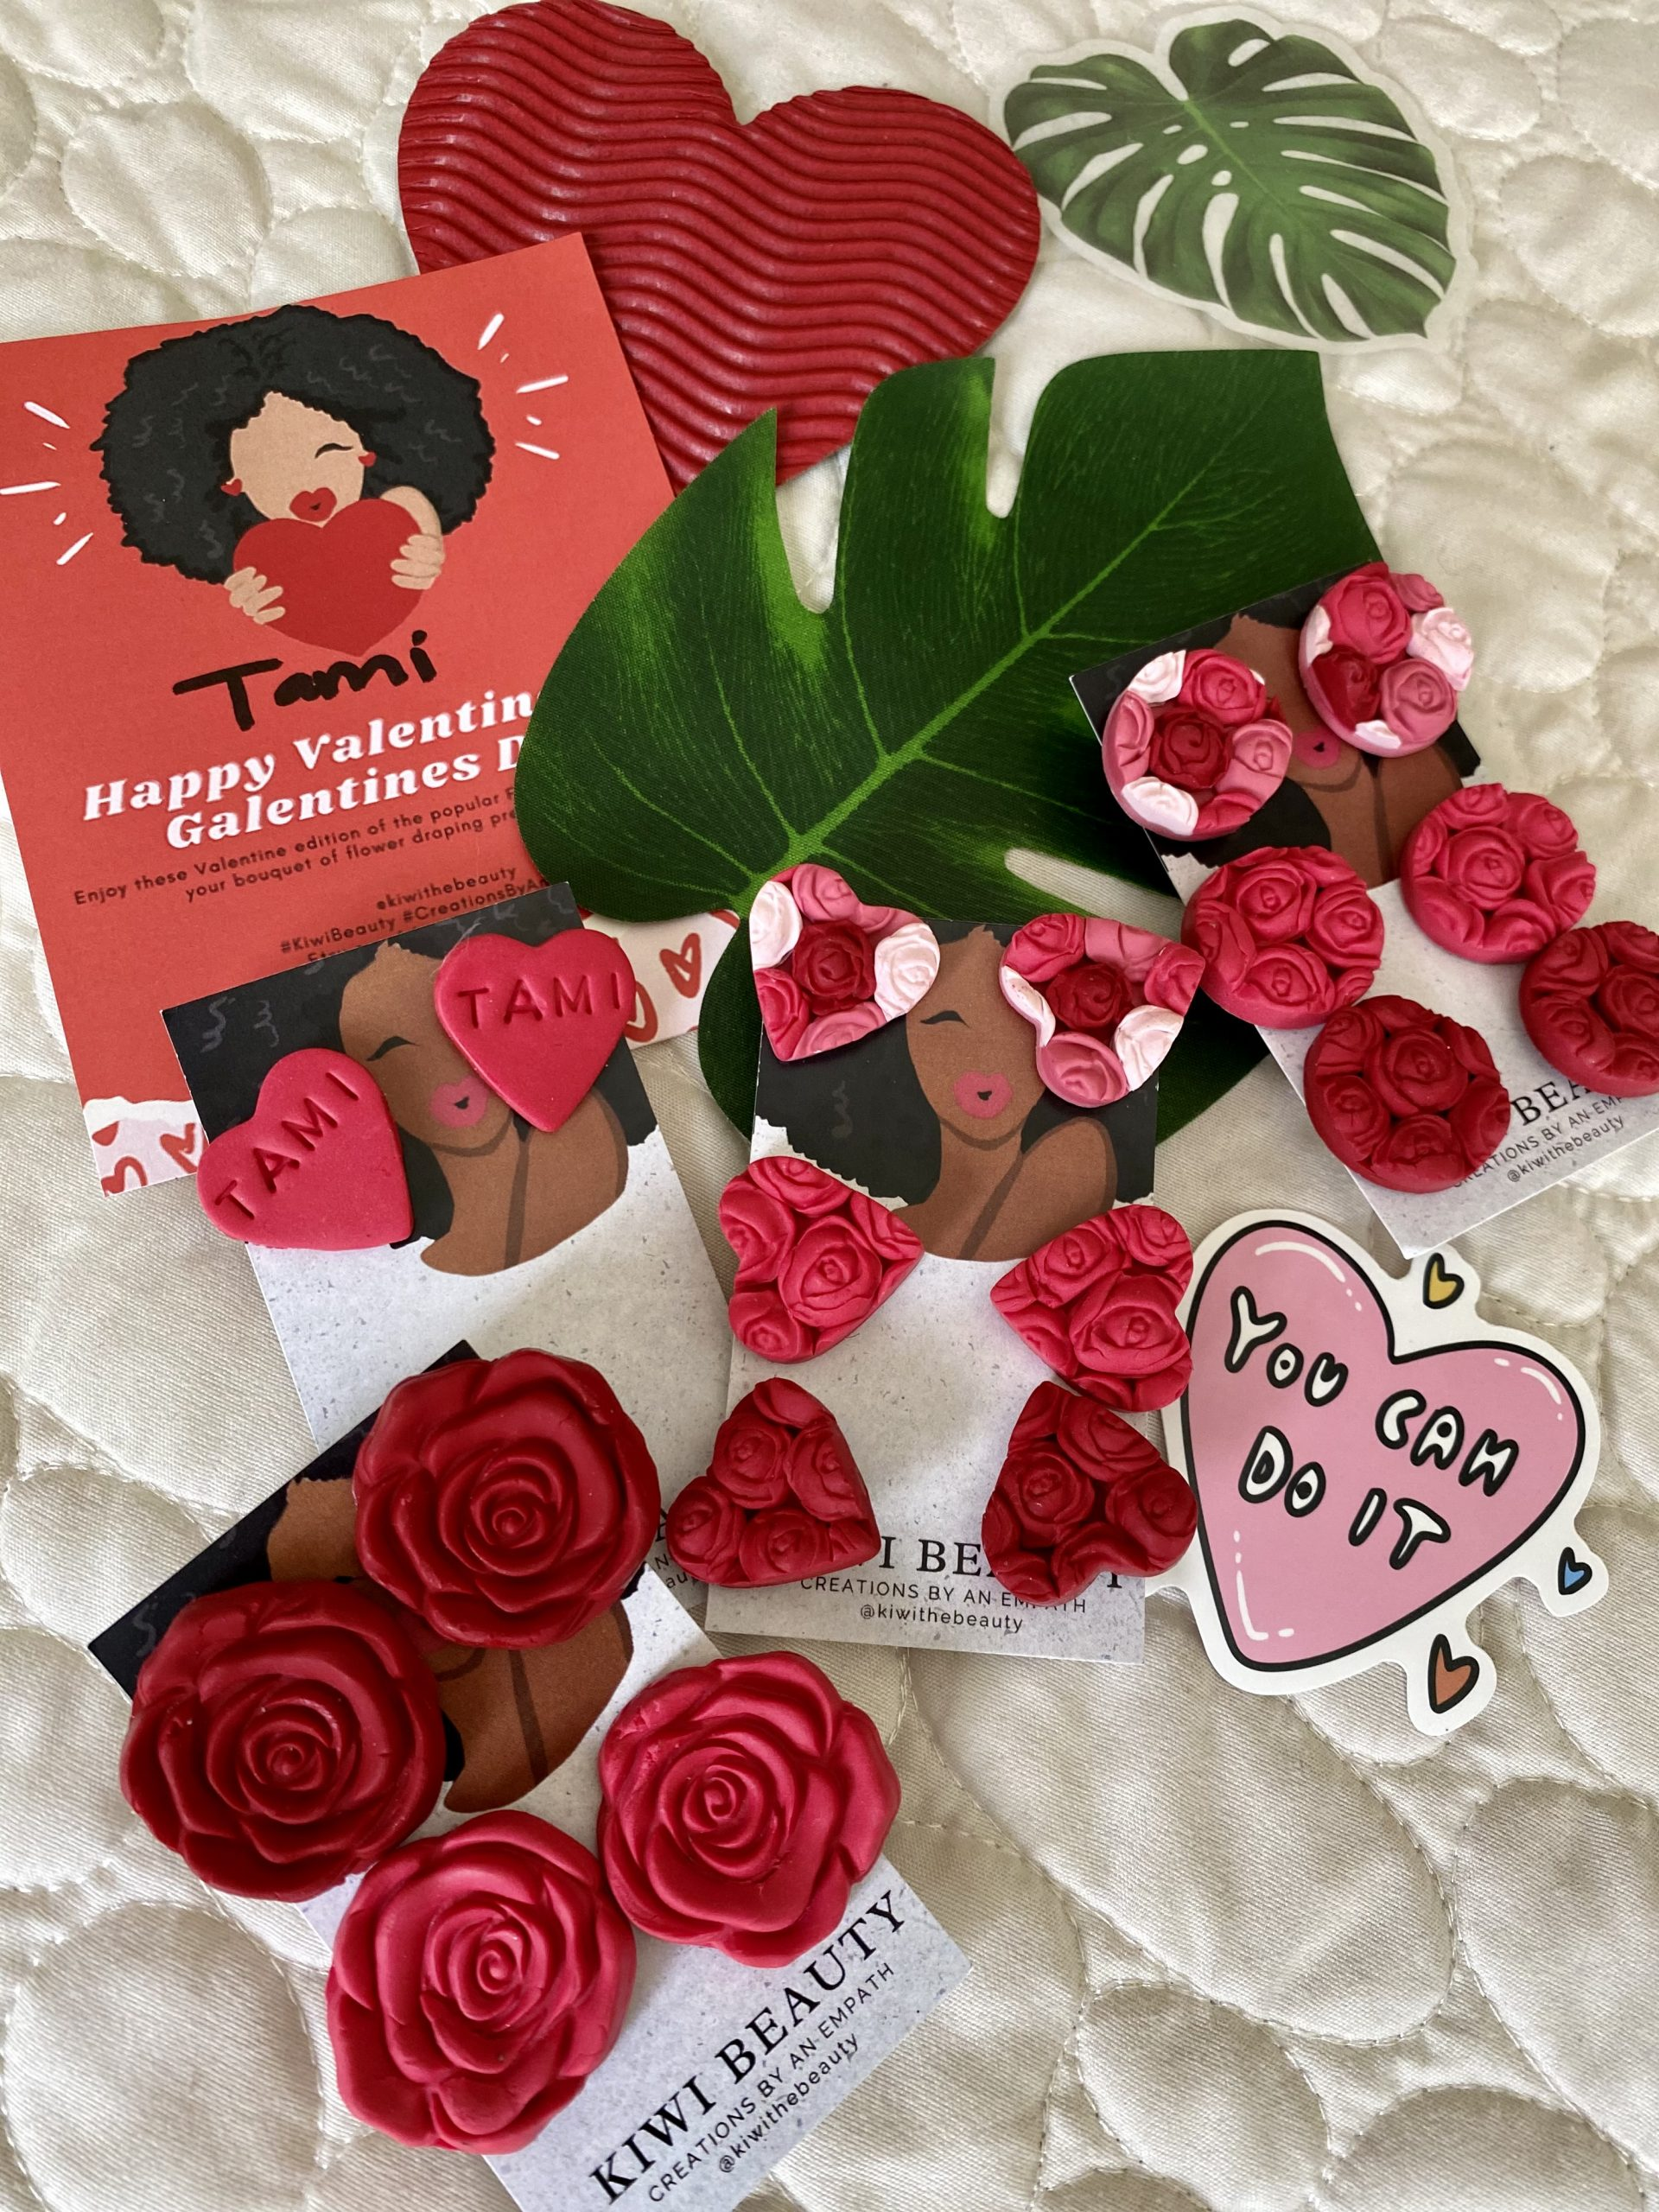 Kiwi Beauty 'Creations By An Empath' Galentine's Day Earrings